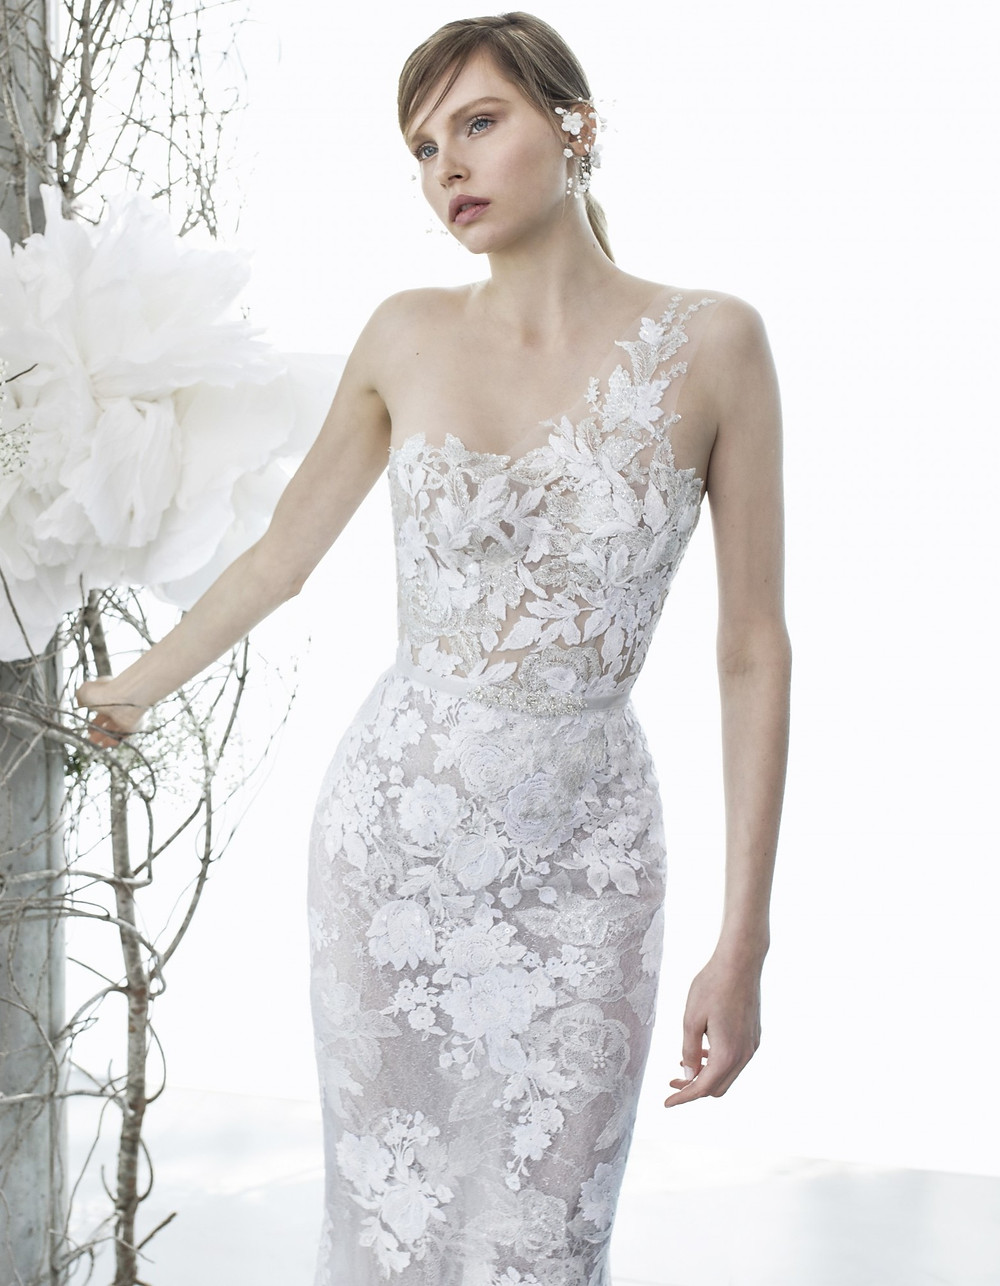 A Mira Zwillinger one shoulder, sheath wedding dress with flowers and floral embellishments